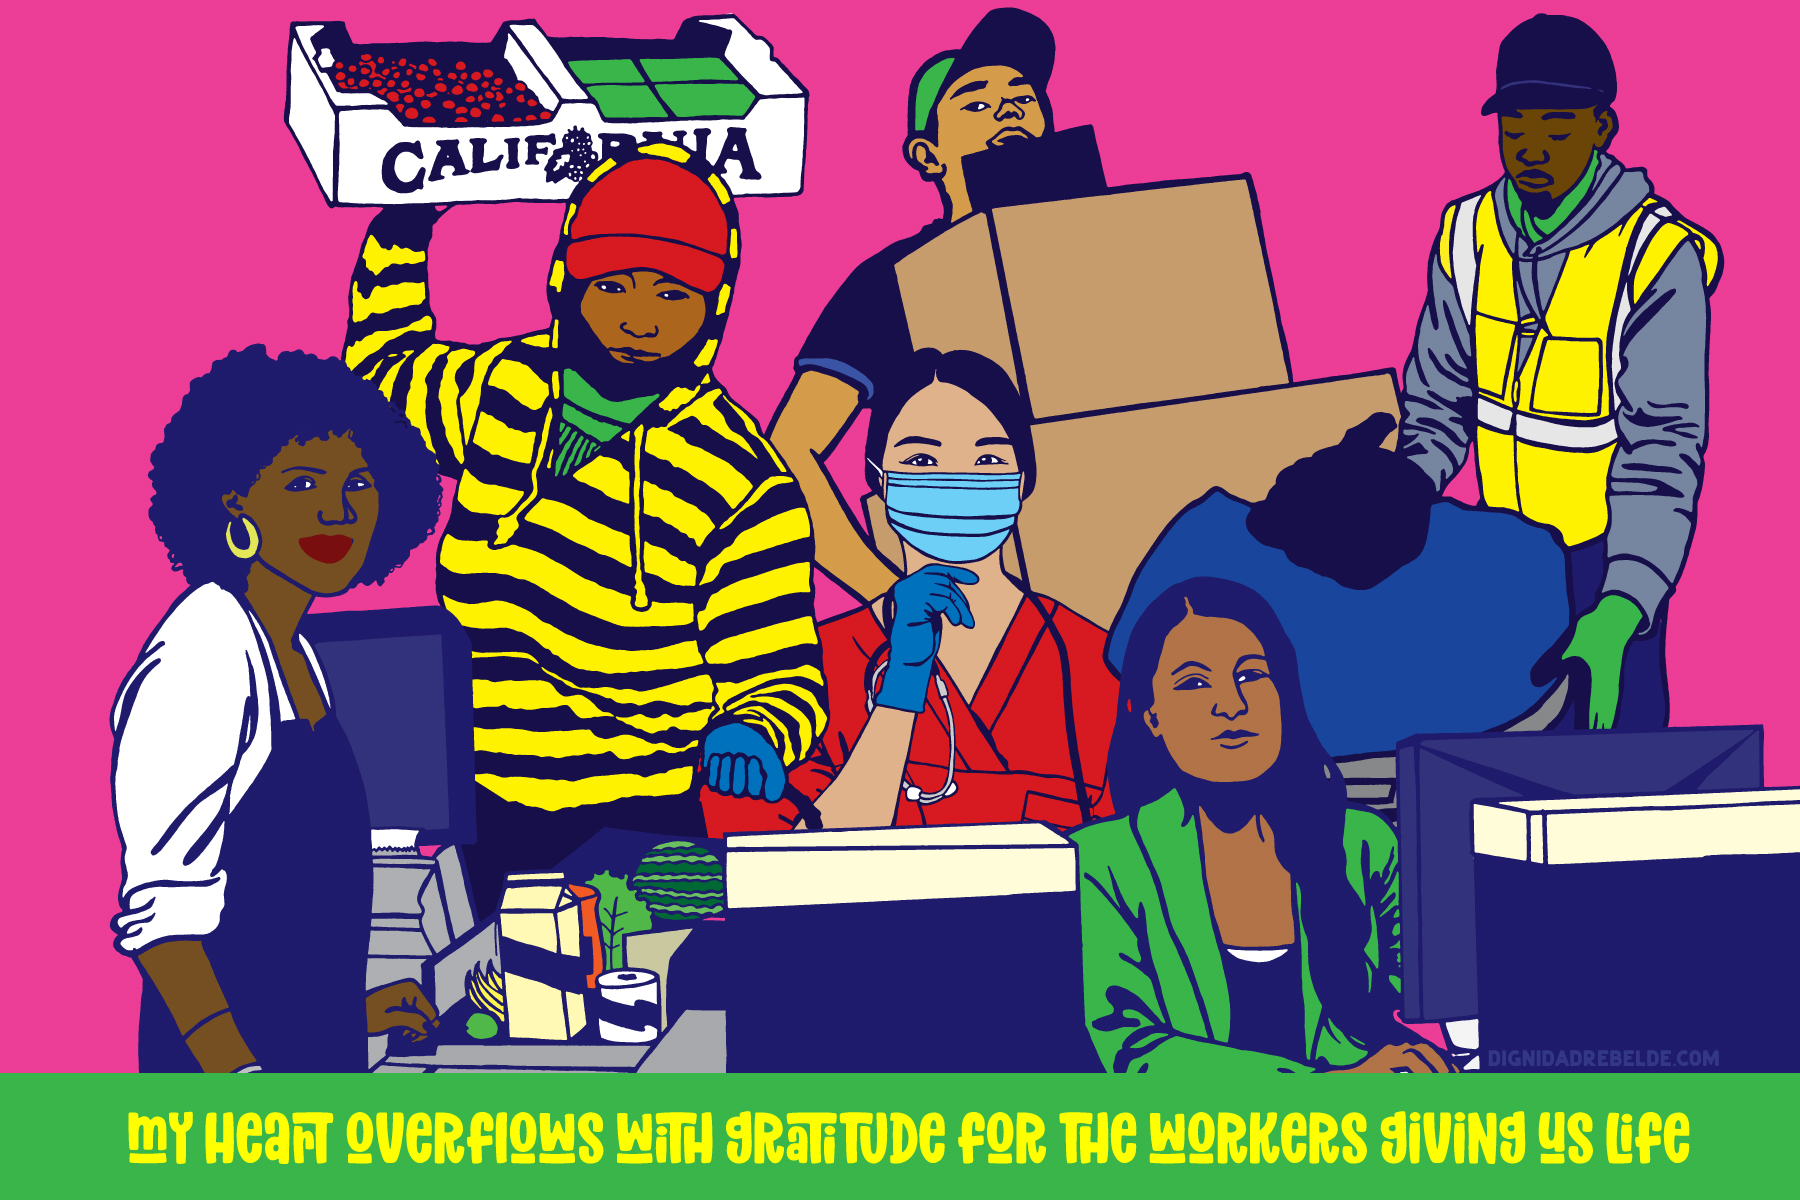 Solidarity with Essential Workers by Melanie Cervantes.